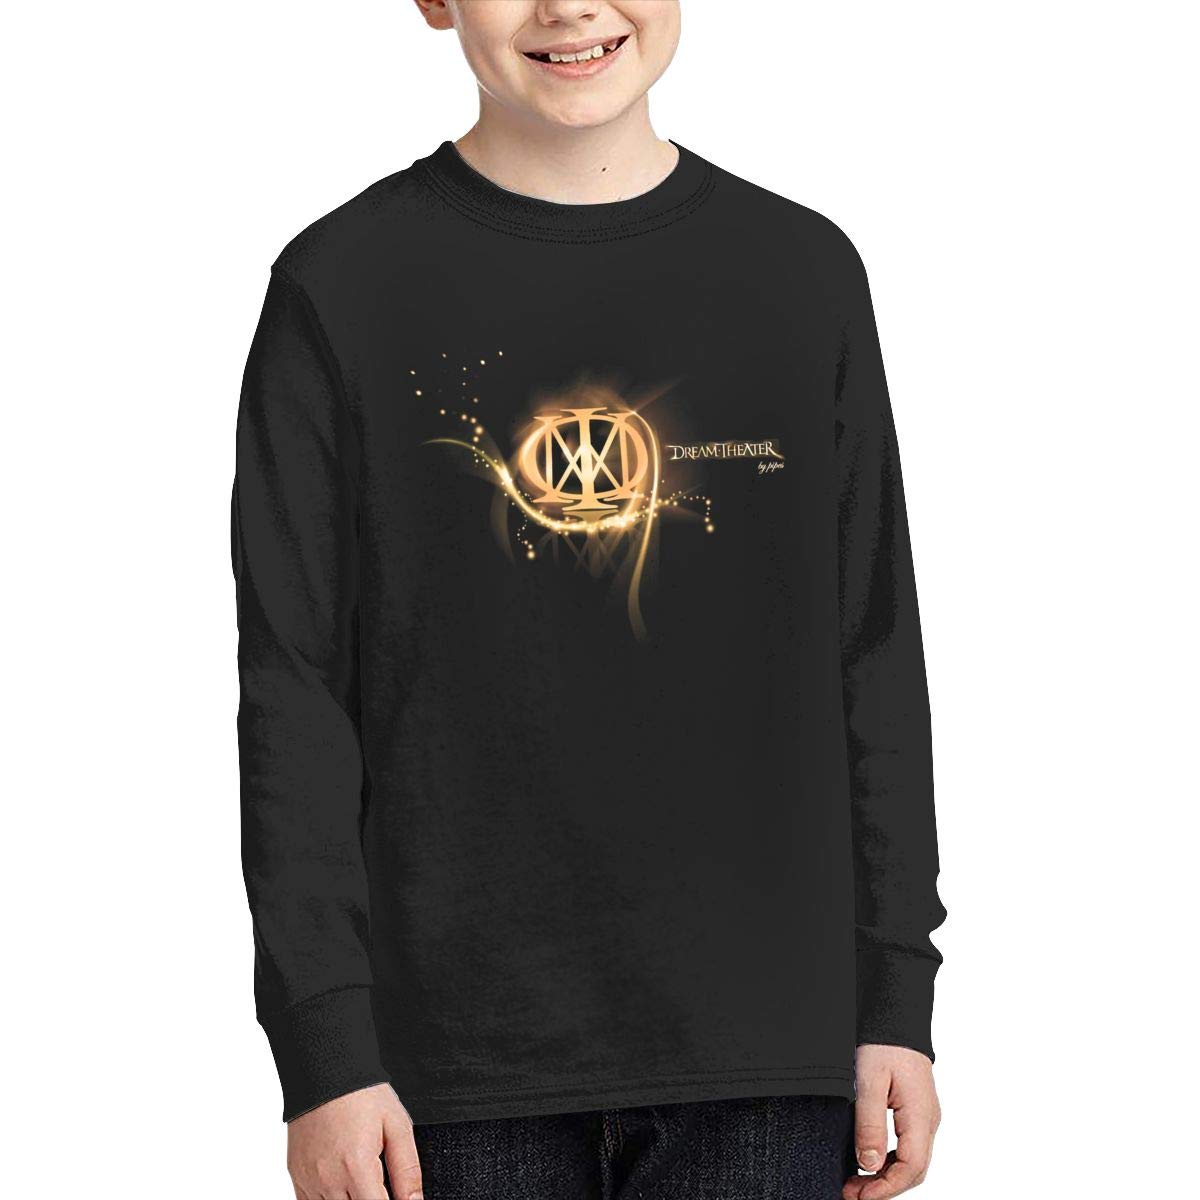 MichaelHazzard Dream Theater Tour 2019 Youth Breathable Long Sleeve Crewneck Tee T-Shirt for Boys and Girls